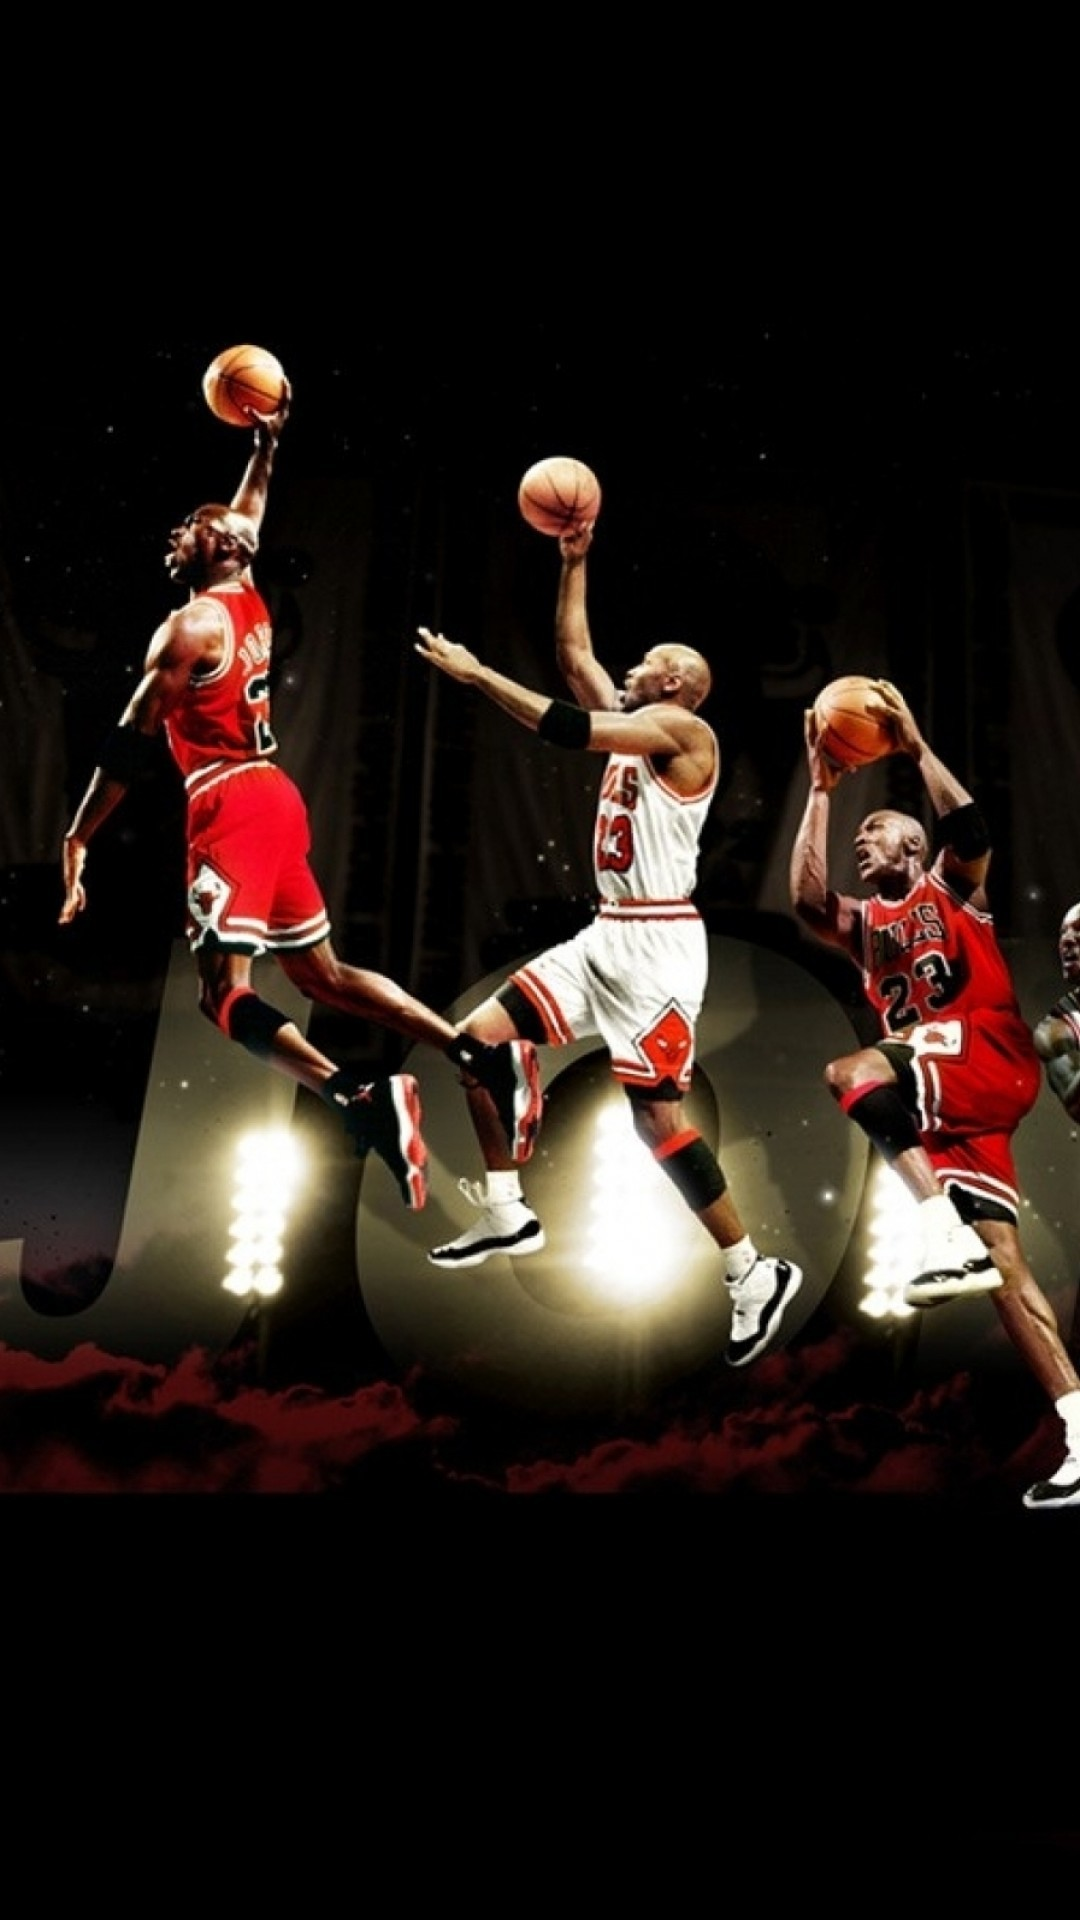 Best Sports Wallpapers Basketball Hd Wallpapers